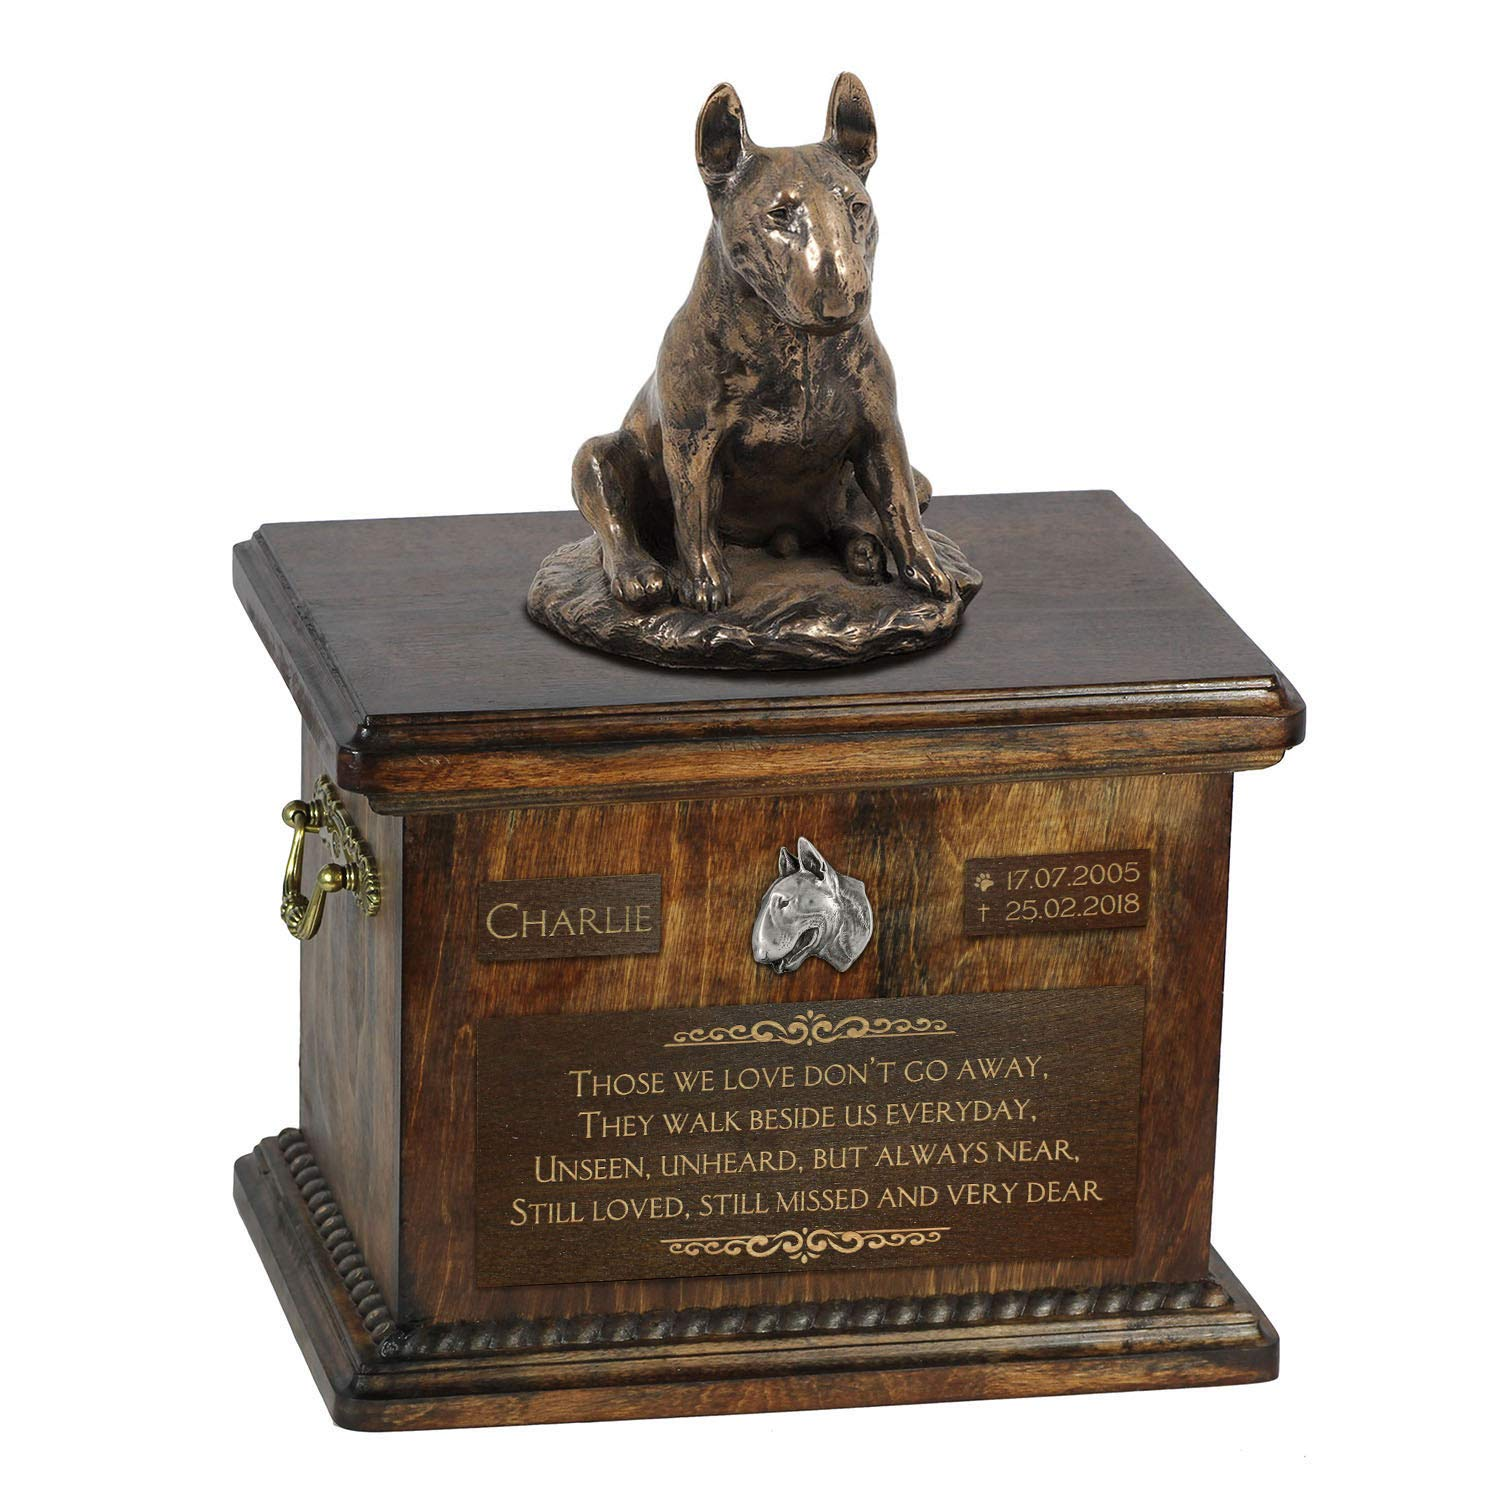 Bull Terrier sitting, Urn for Dog Ashes Memorial with Statue, Pet's Name and Quote ArtDog Personalized